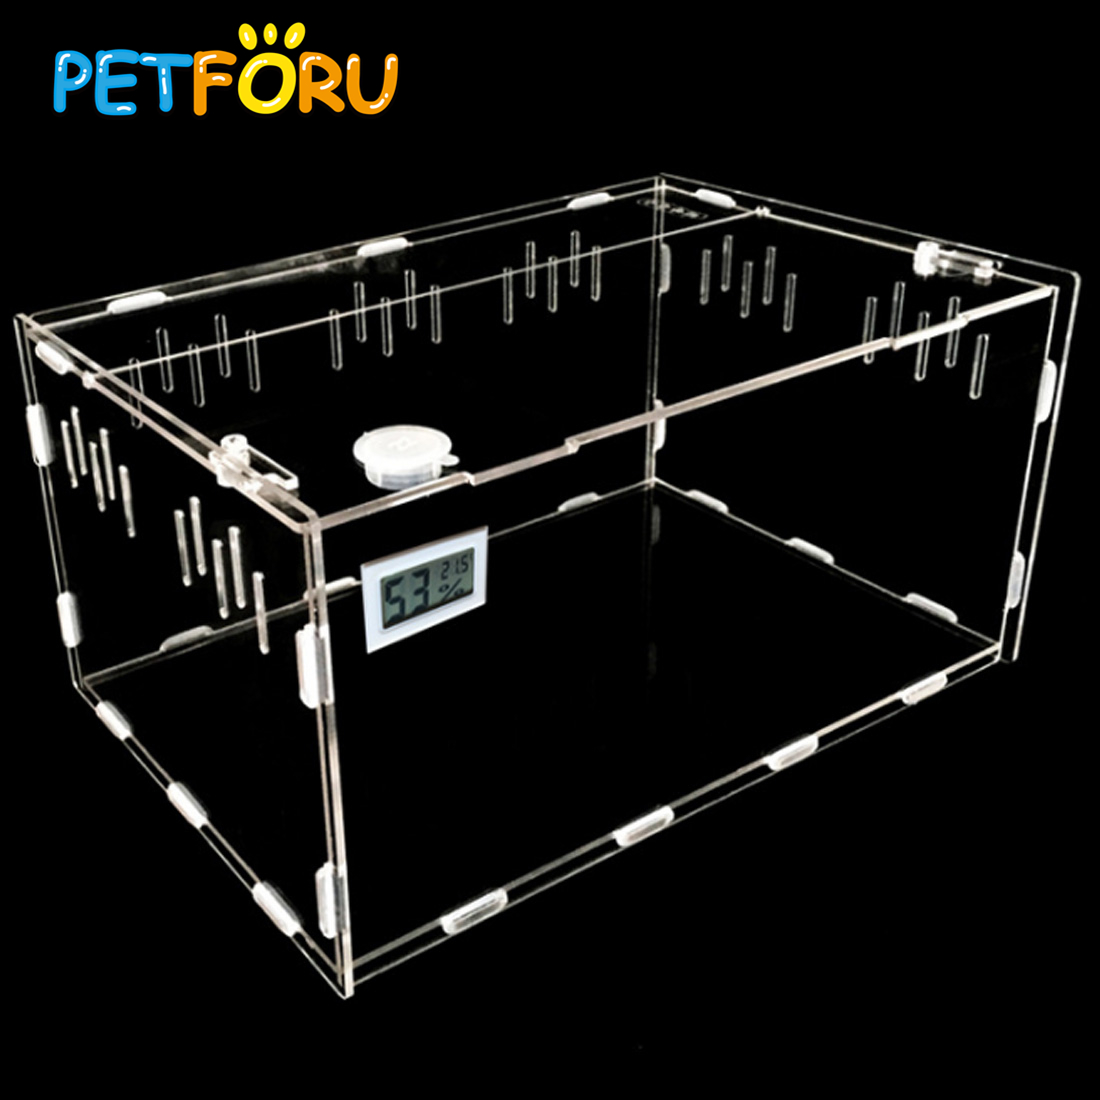 PETFORU Acrylic Reptile Feeding Box Crawler Pets Feeding Container With Temperature Hygrometer - L